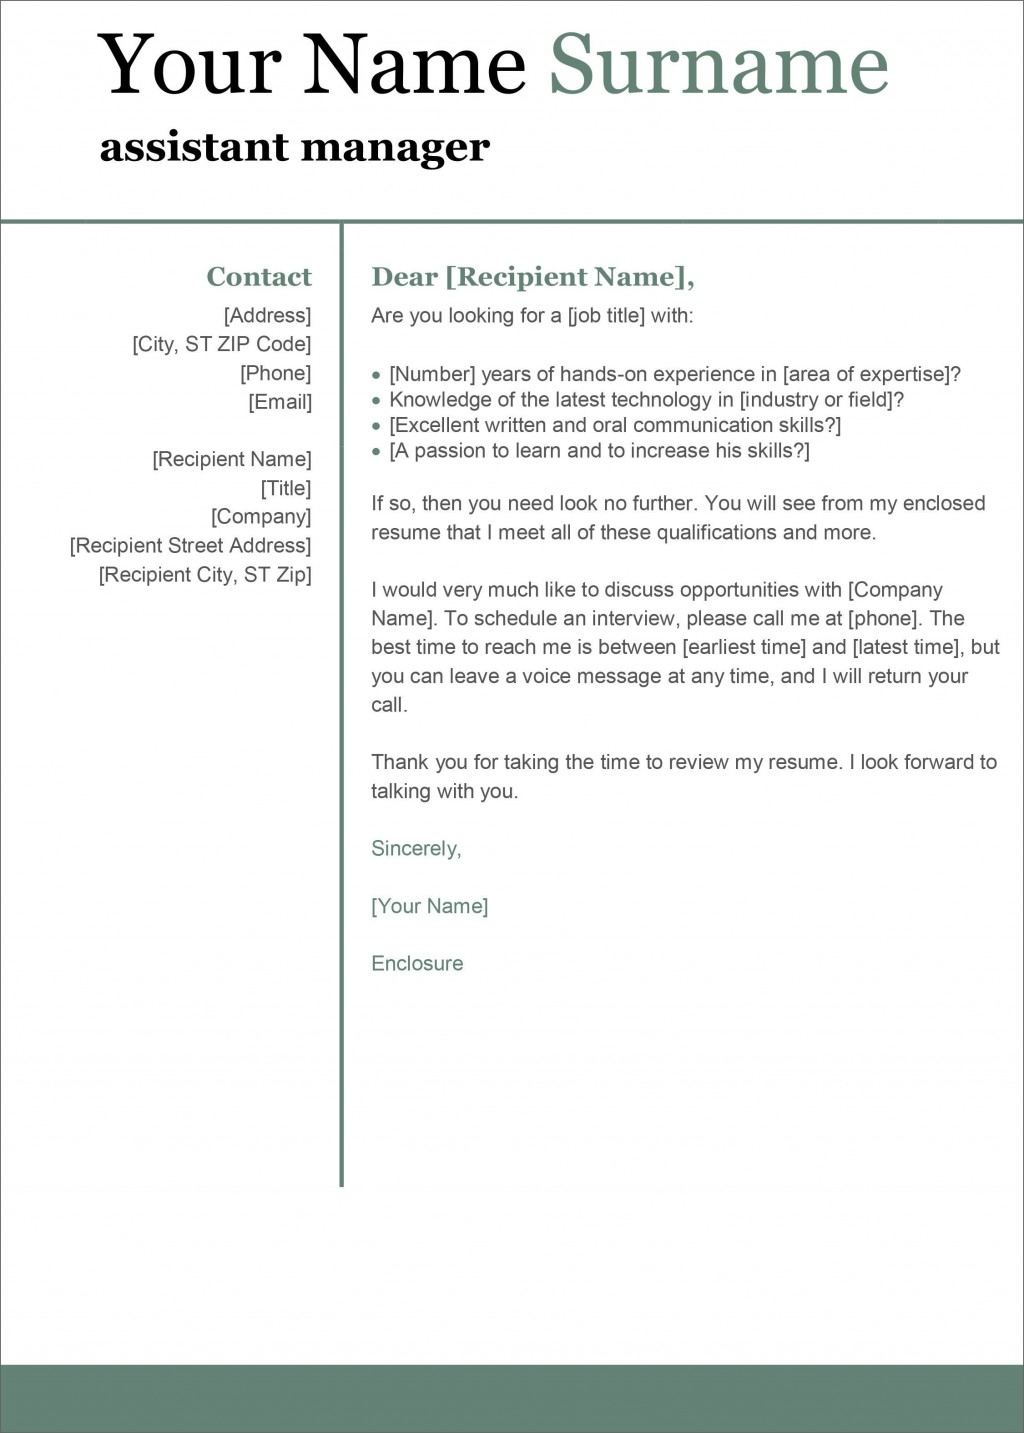 002 Surprising Microsoft Cover Letter Template Download High Resolution  Word FreeLarge